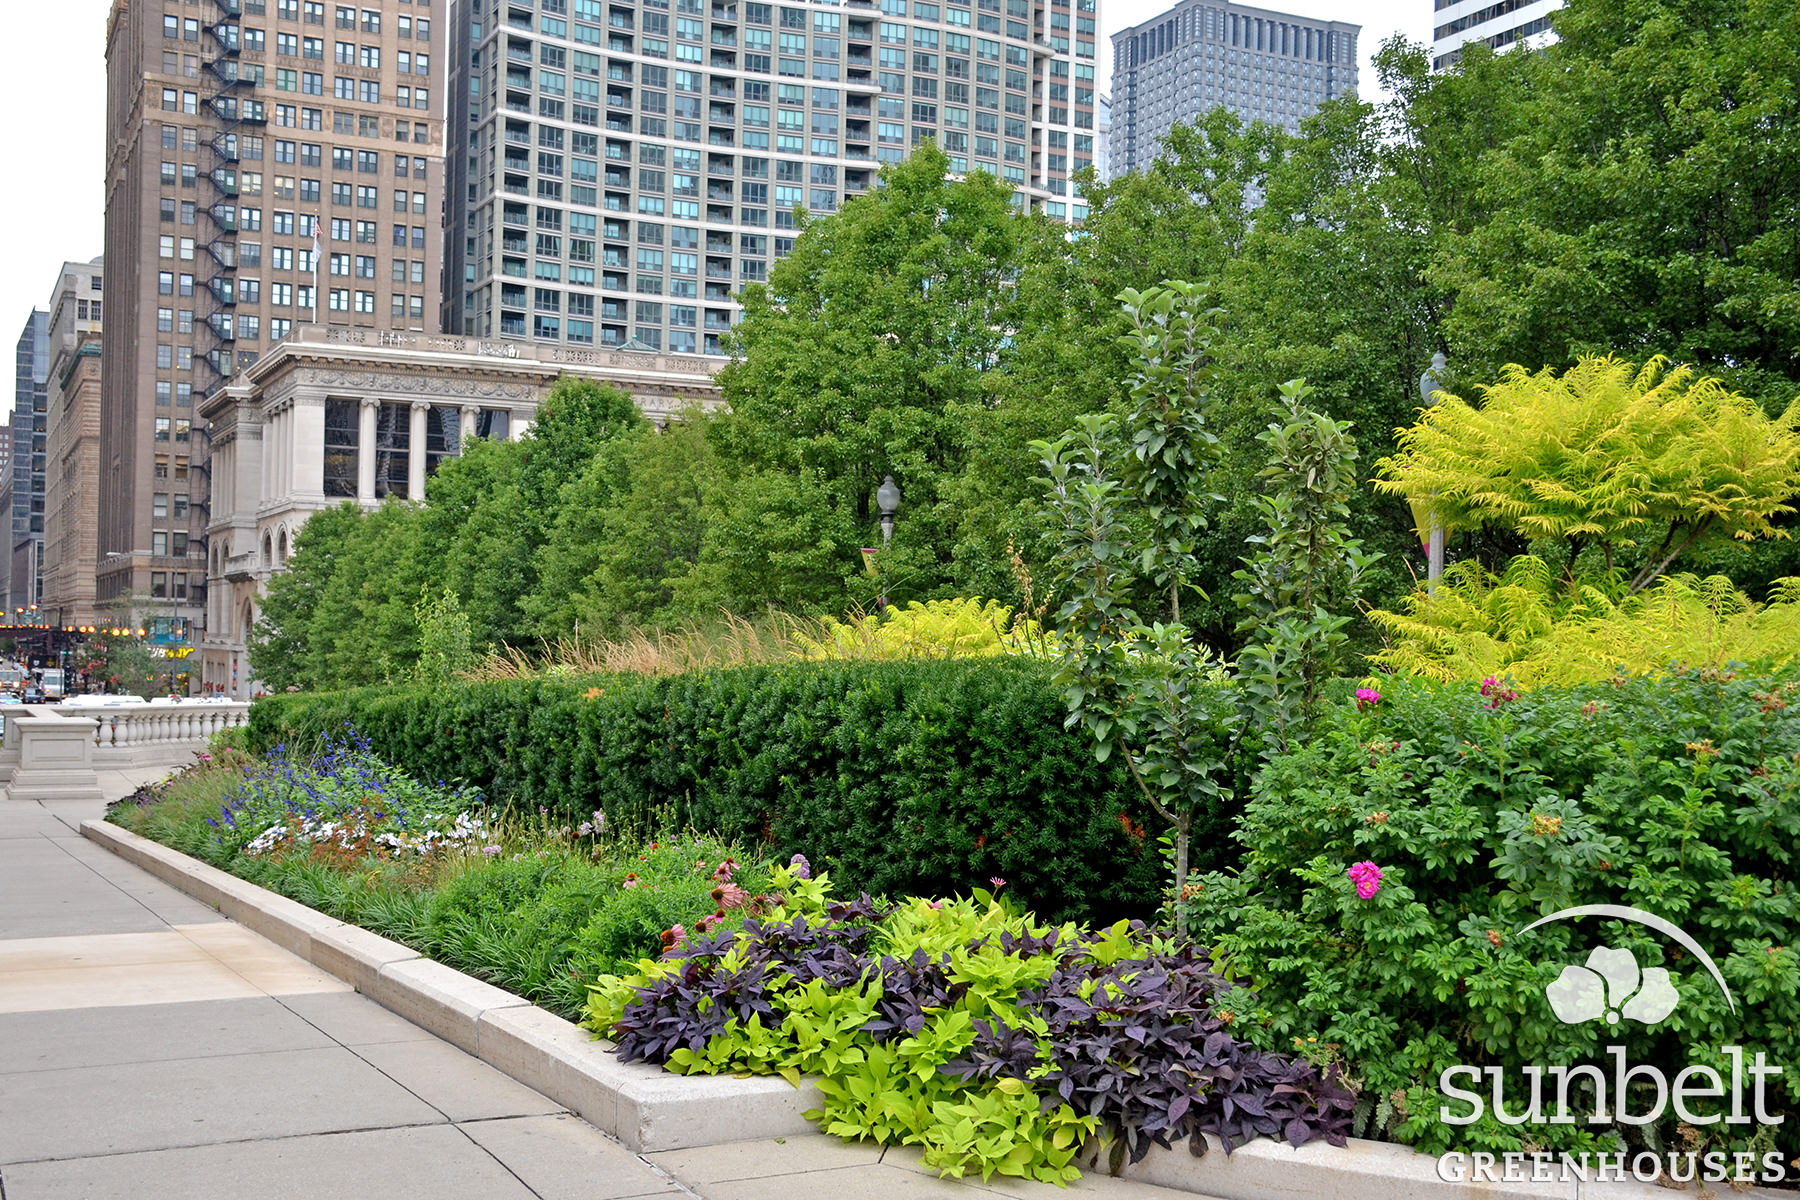 2015-08-19-chicago-landscaping-09.jpg